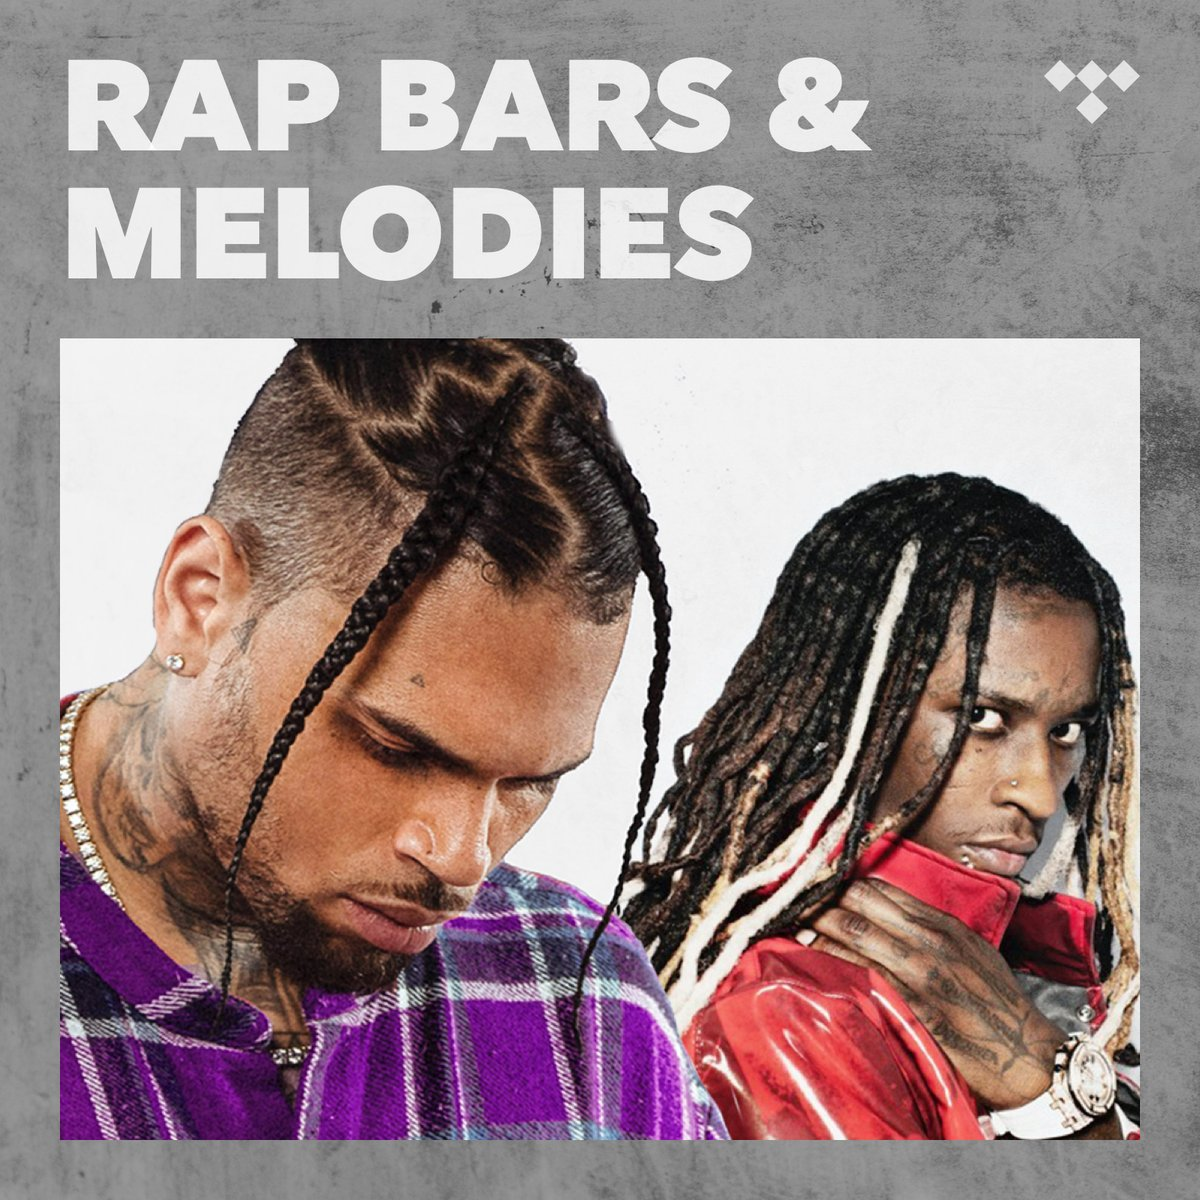 #TeamBreezy! Check out the Go Crazy Remix featured on the Rap Bars & Melodies playlist on @TIDAL! https://t.co/20YldQ2KCc https://t.co/GSWnY1vWHH